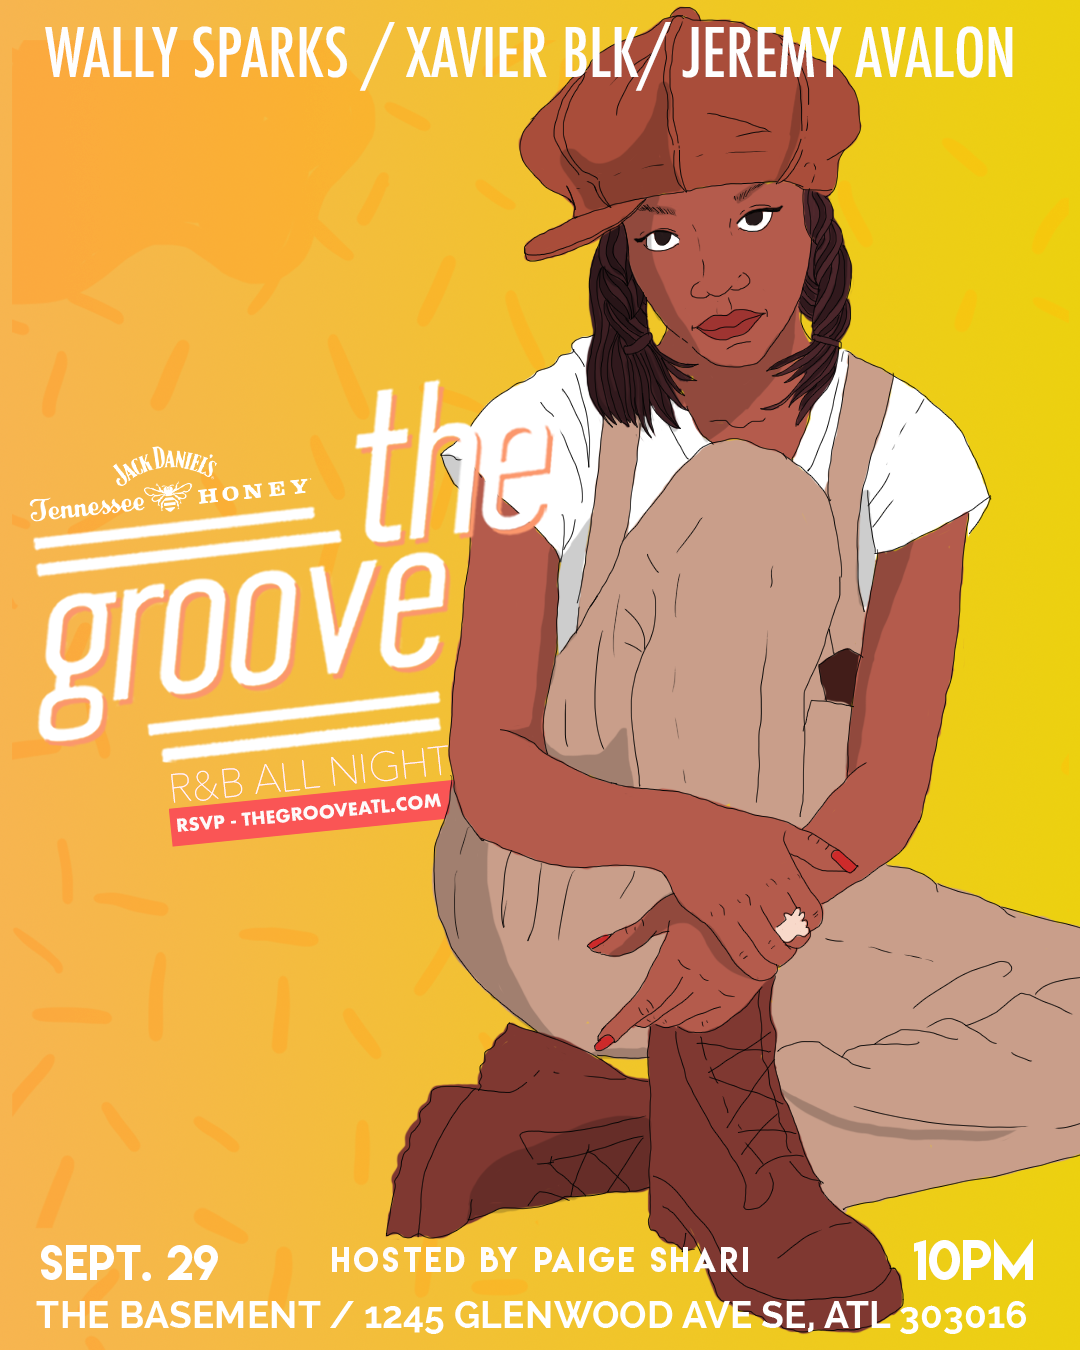 001-the-groove-092917-flyer-ig-feed.PNG